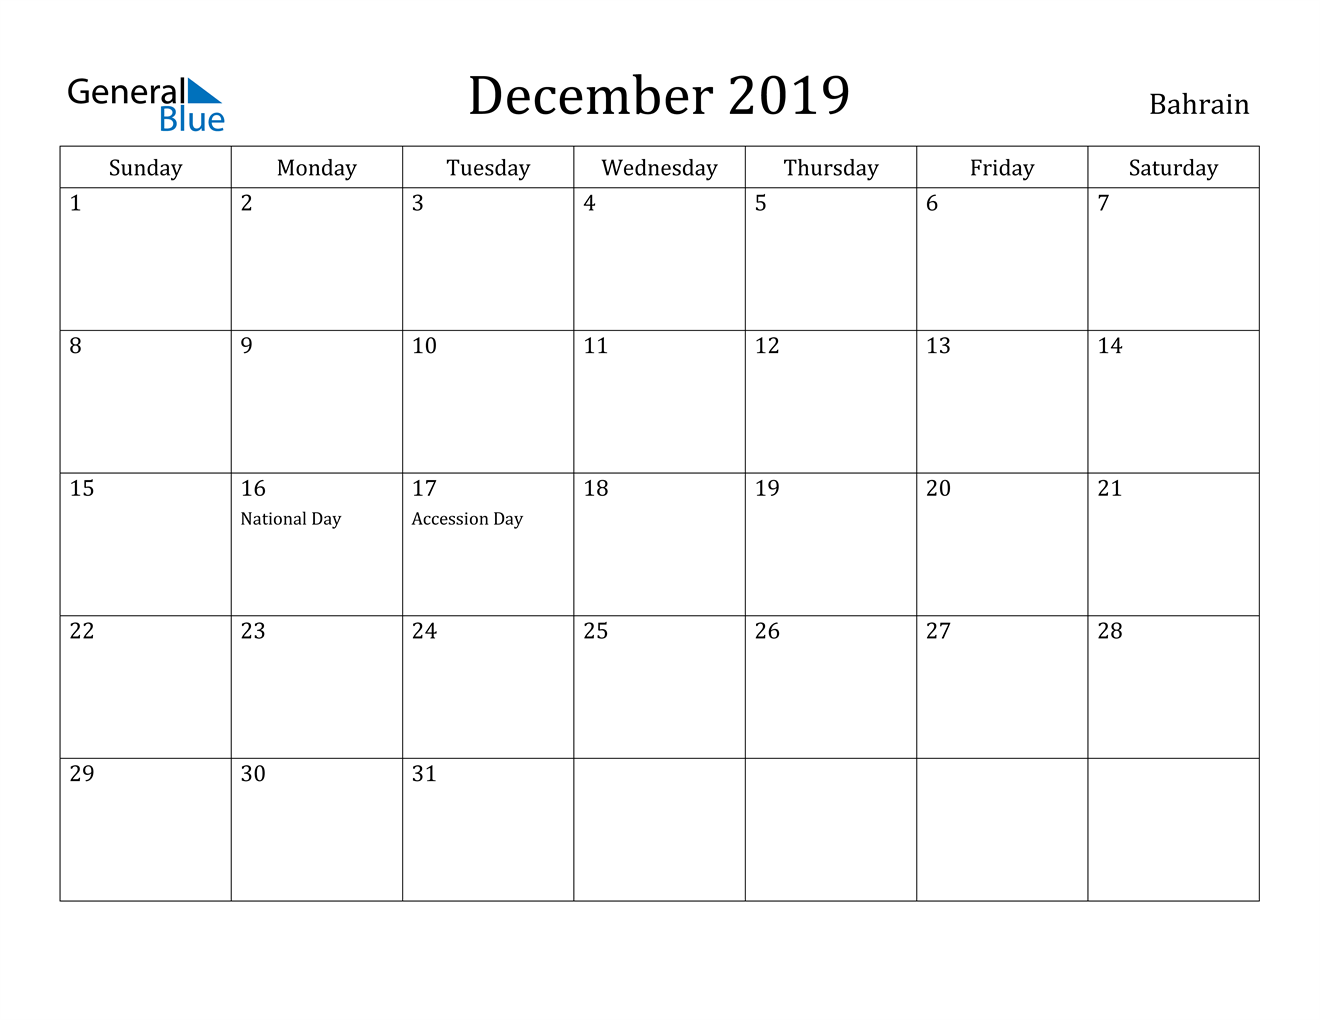 Image of December 2019 Bahrain Calendar with Holidays Calendar